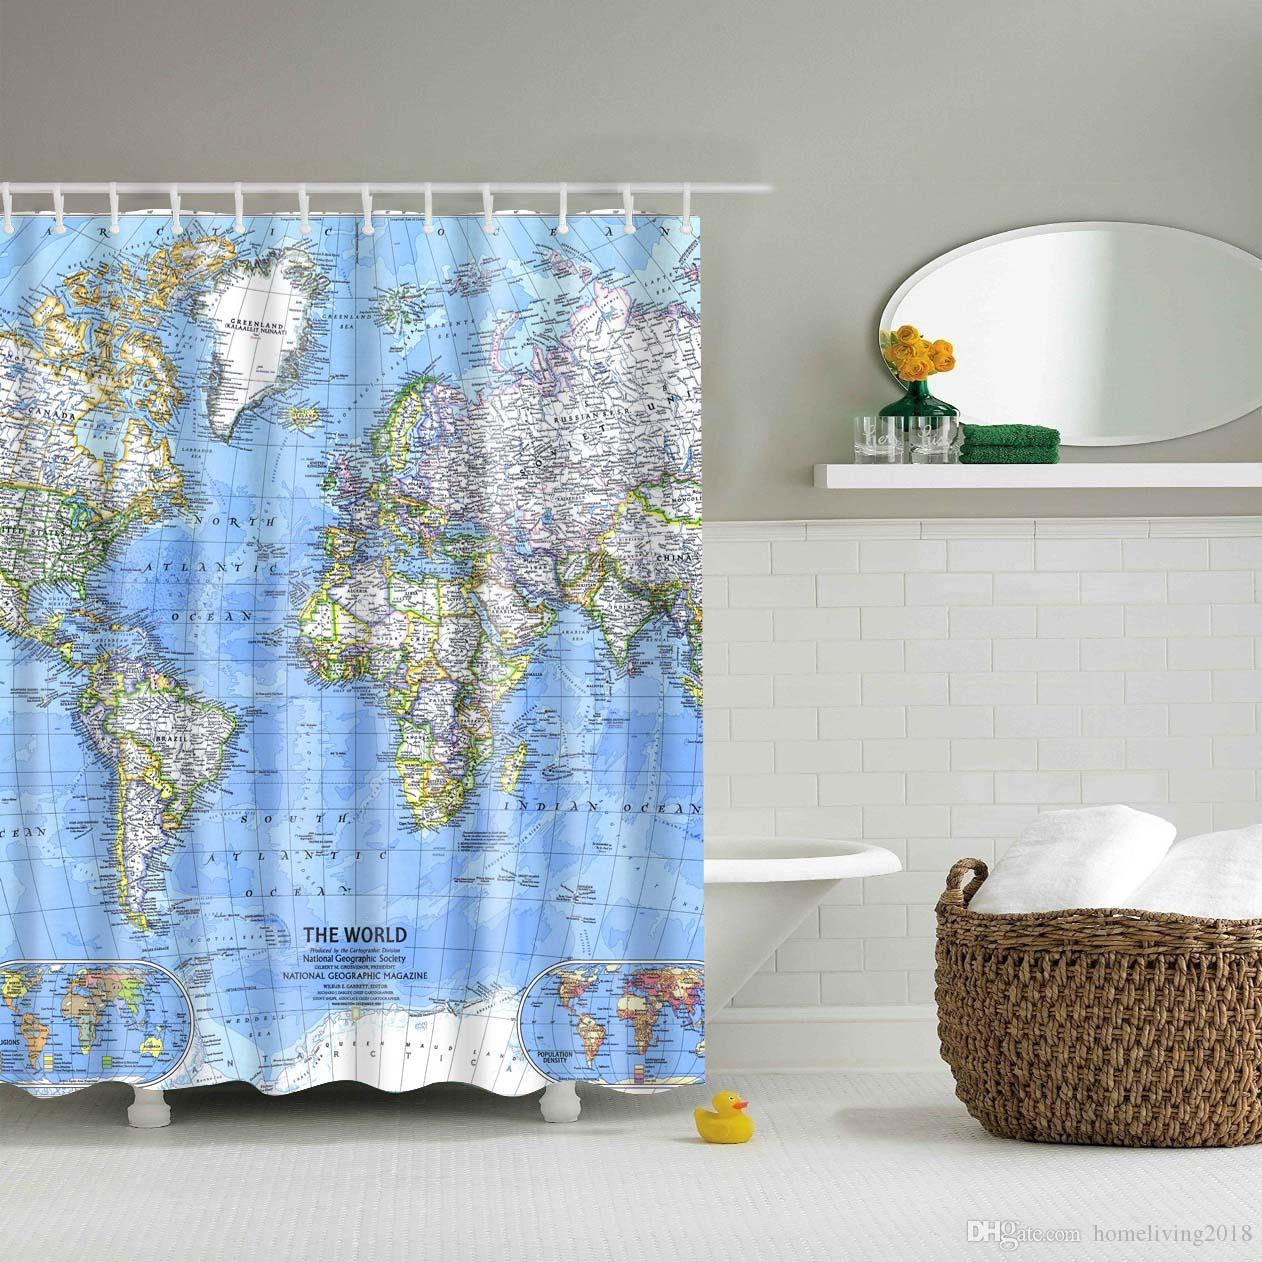 Fabric Shower Curtain Maps Decorations For Bathroom Print Vintage Rustic Theme Decor Home Antiqued With Curtain Rings Hooks